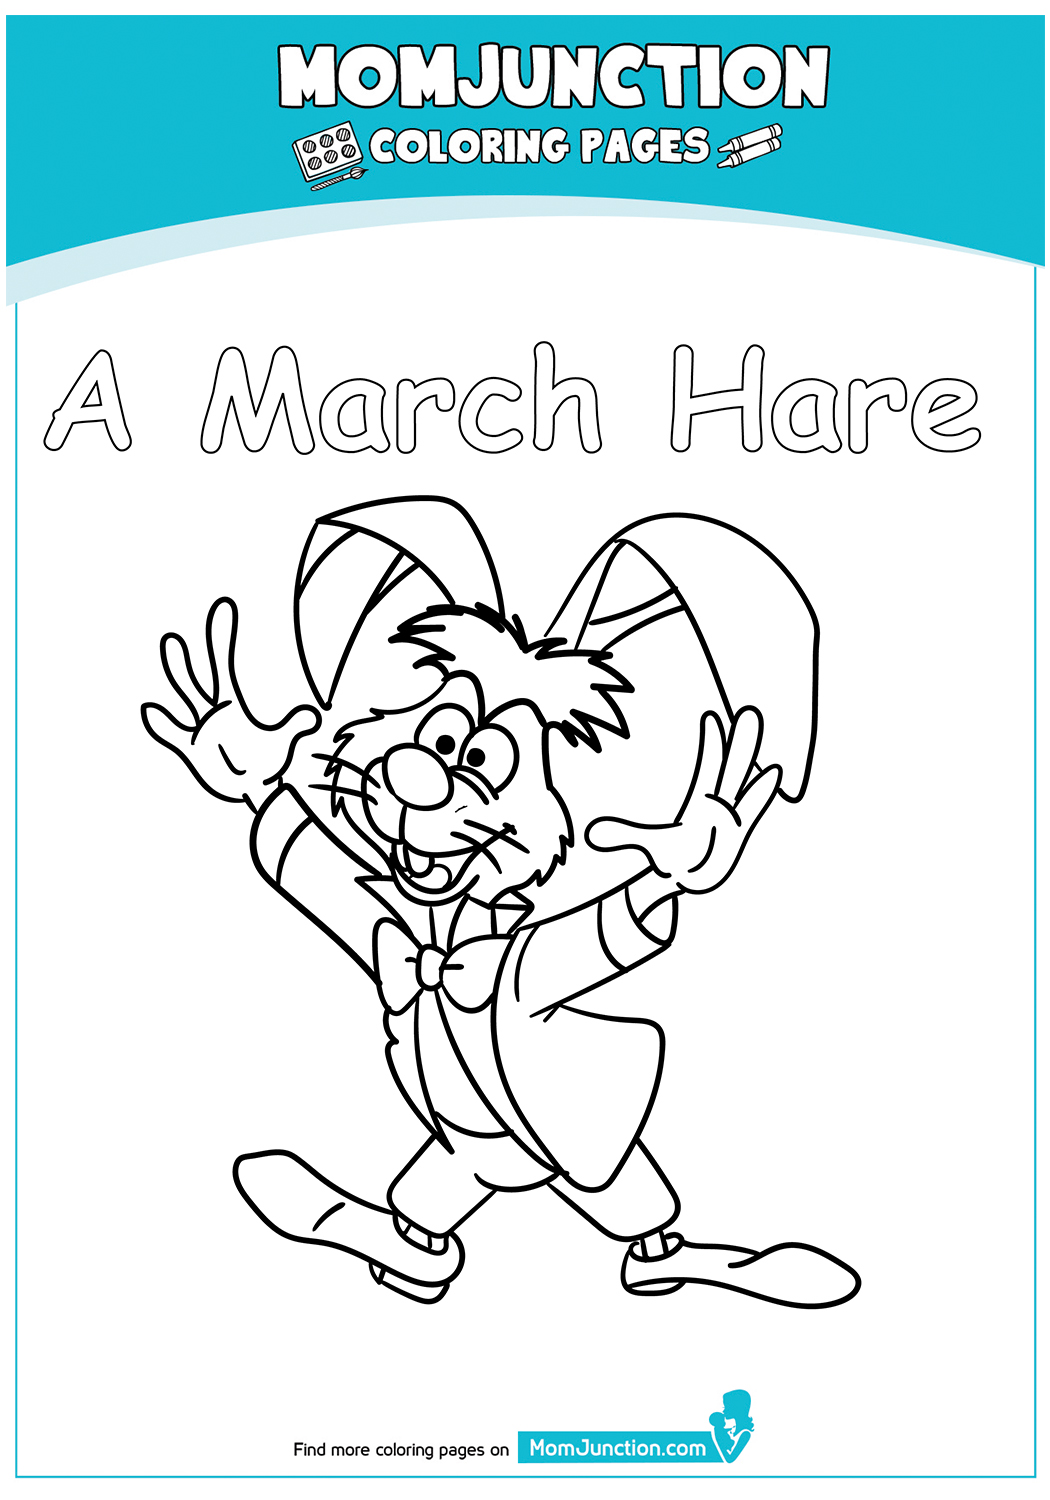 A-March-Hare-17